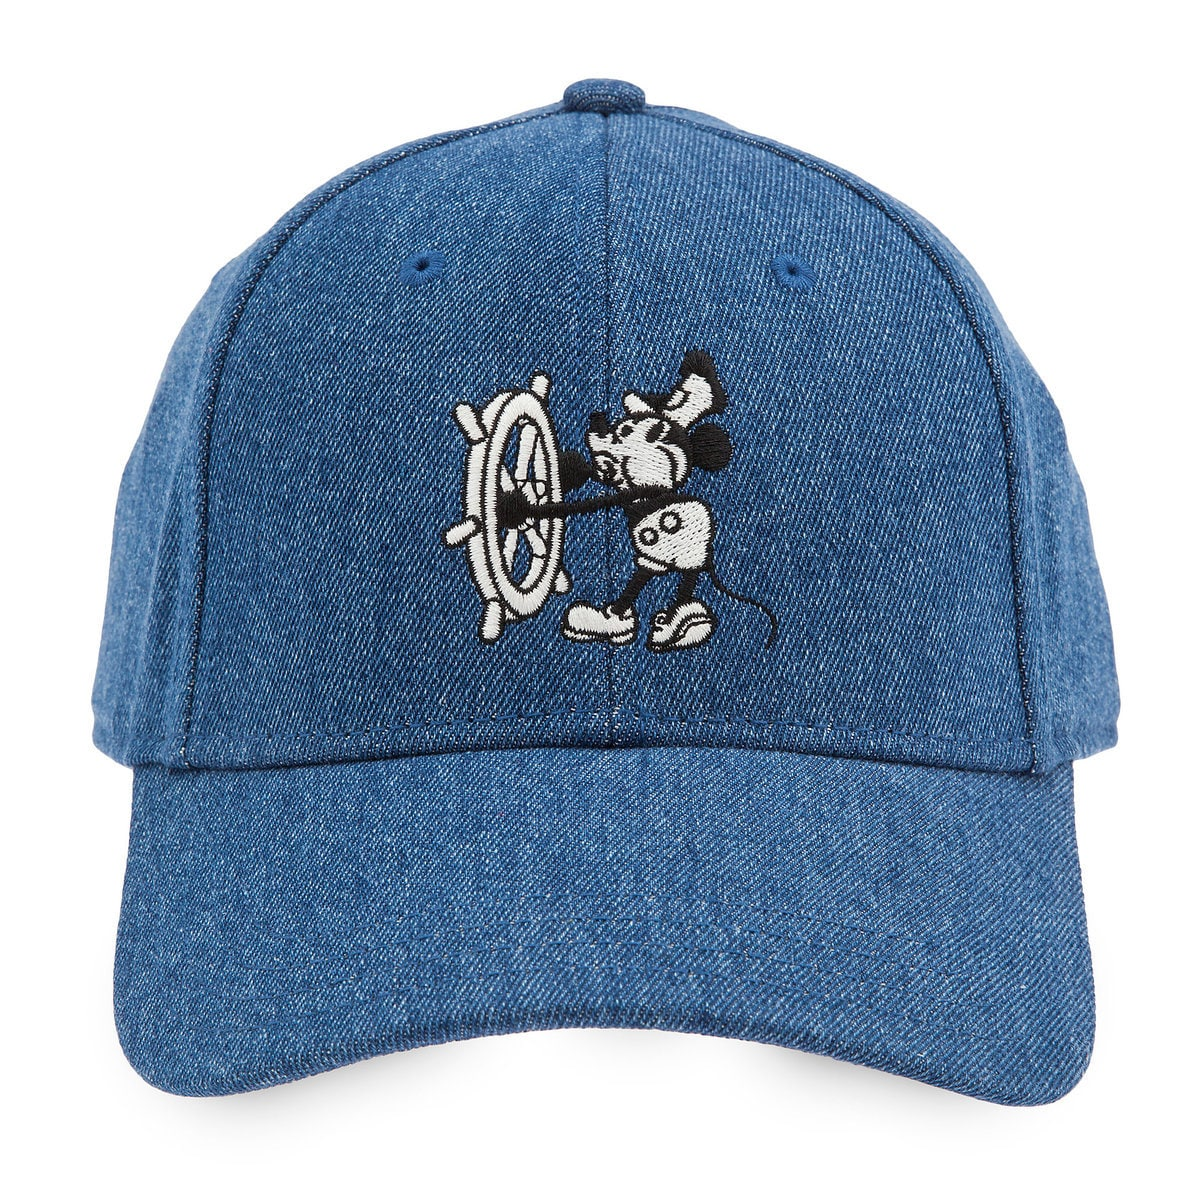 695c76704032a Product Image of Mickey Mouse Steamboat Willie Baseball Cap for Adults   1